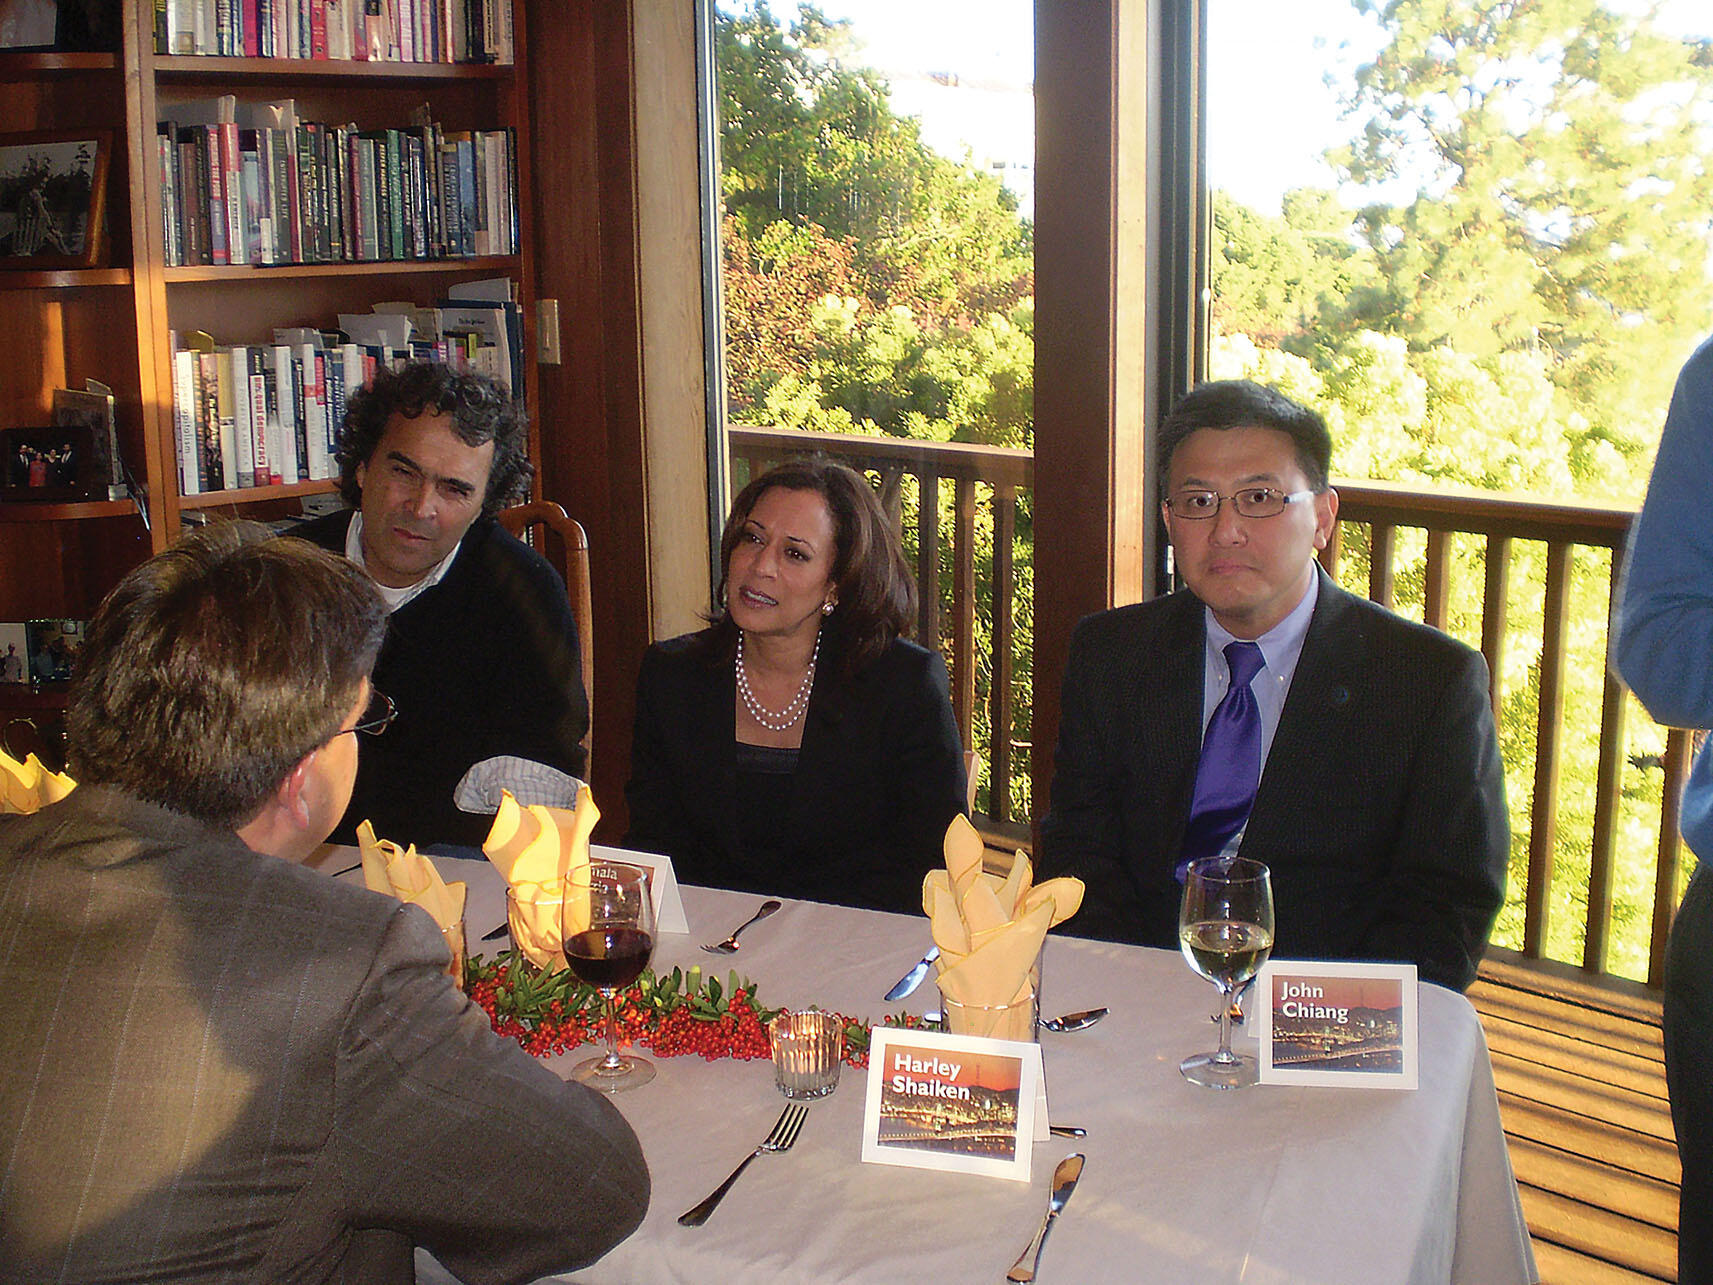 Sergio Fajardo, Kamala Harris, and John Chiang speak over dinner with Pete Gallego (back to camera). (Photo by Meredith Perry.)